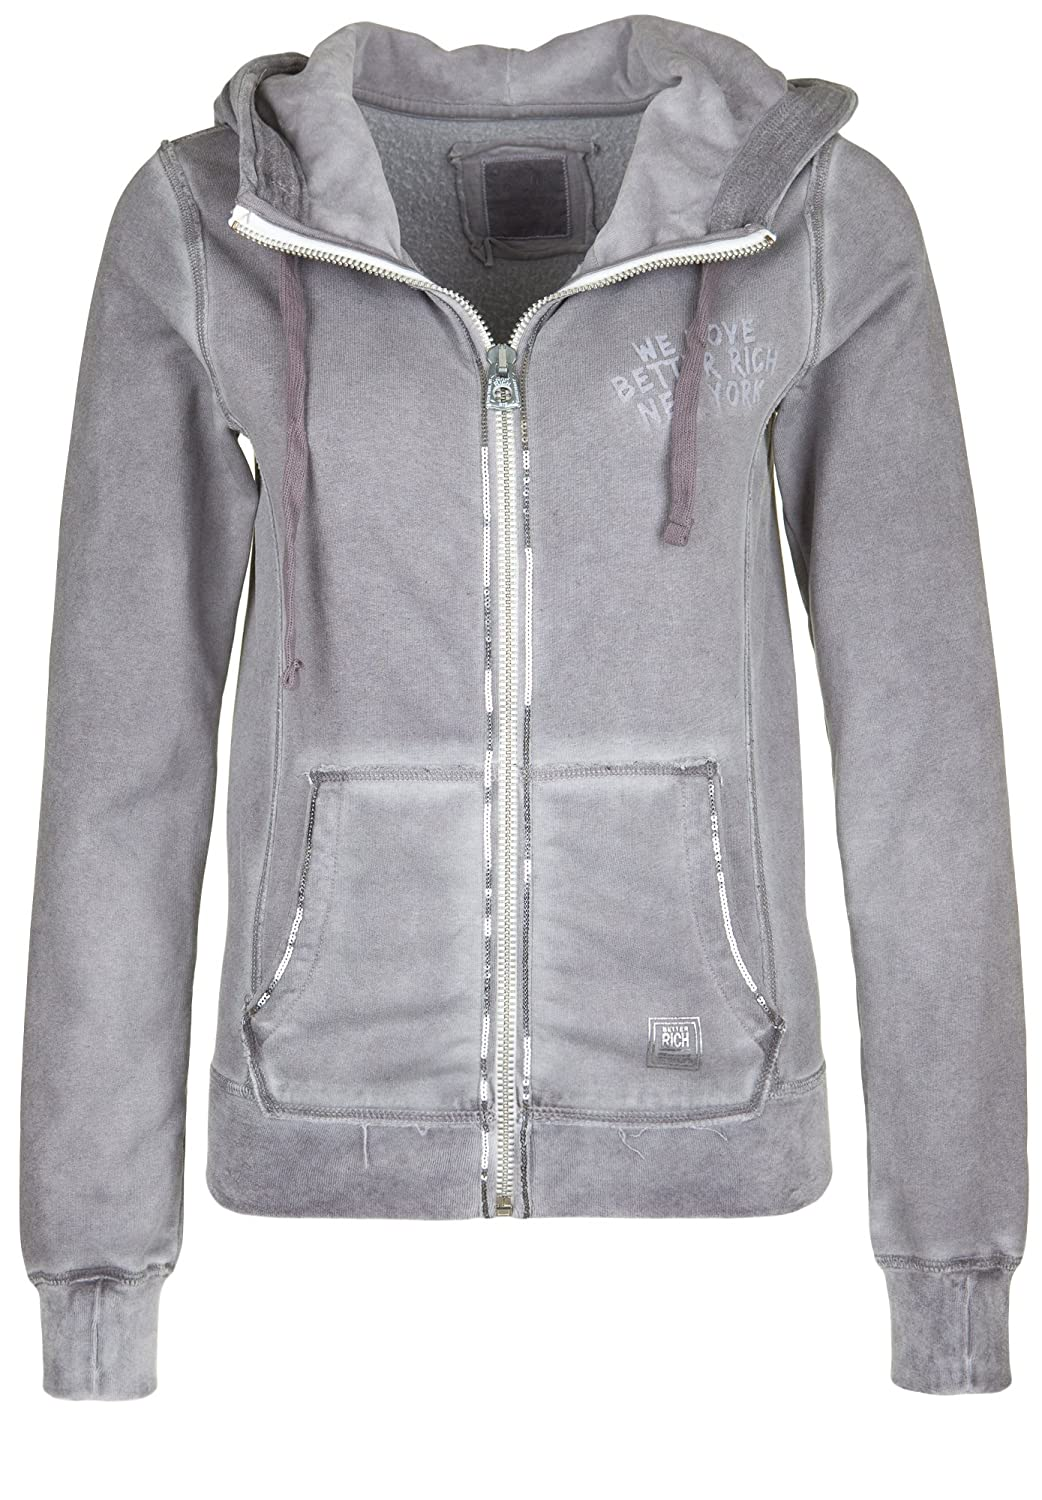 BETTER RICH Damen Kapuzensweatjacke PAILLETTE